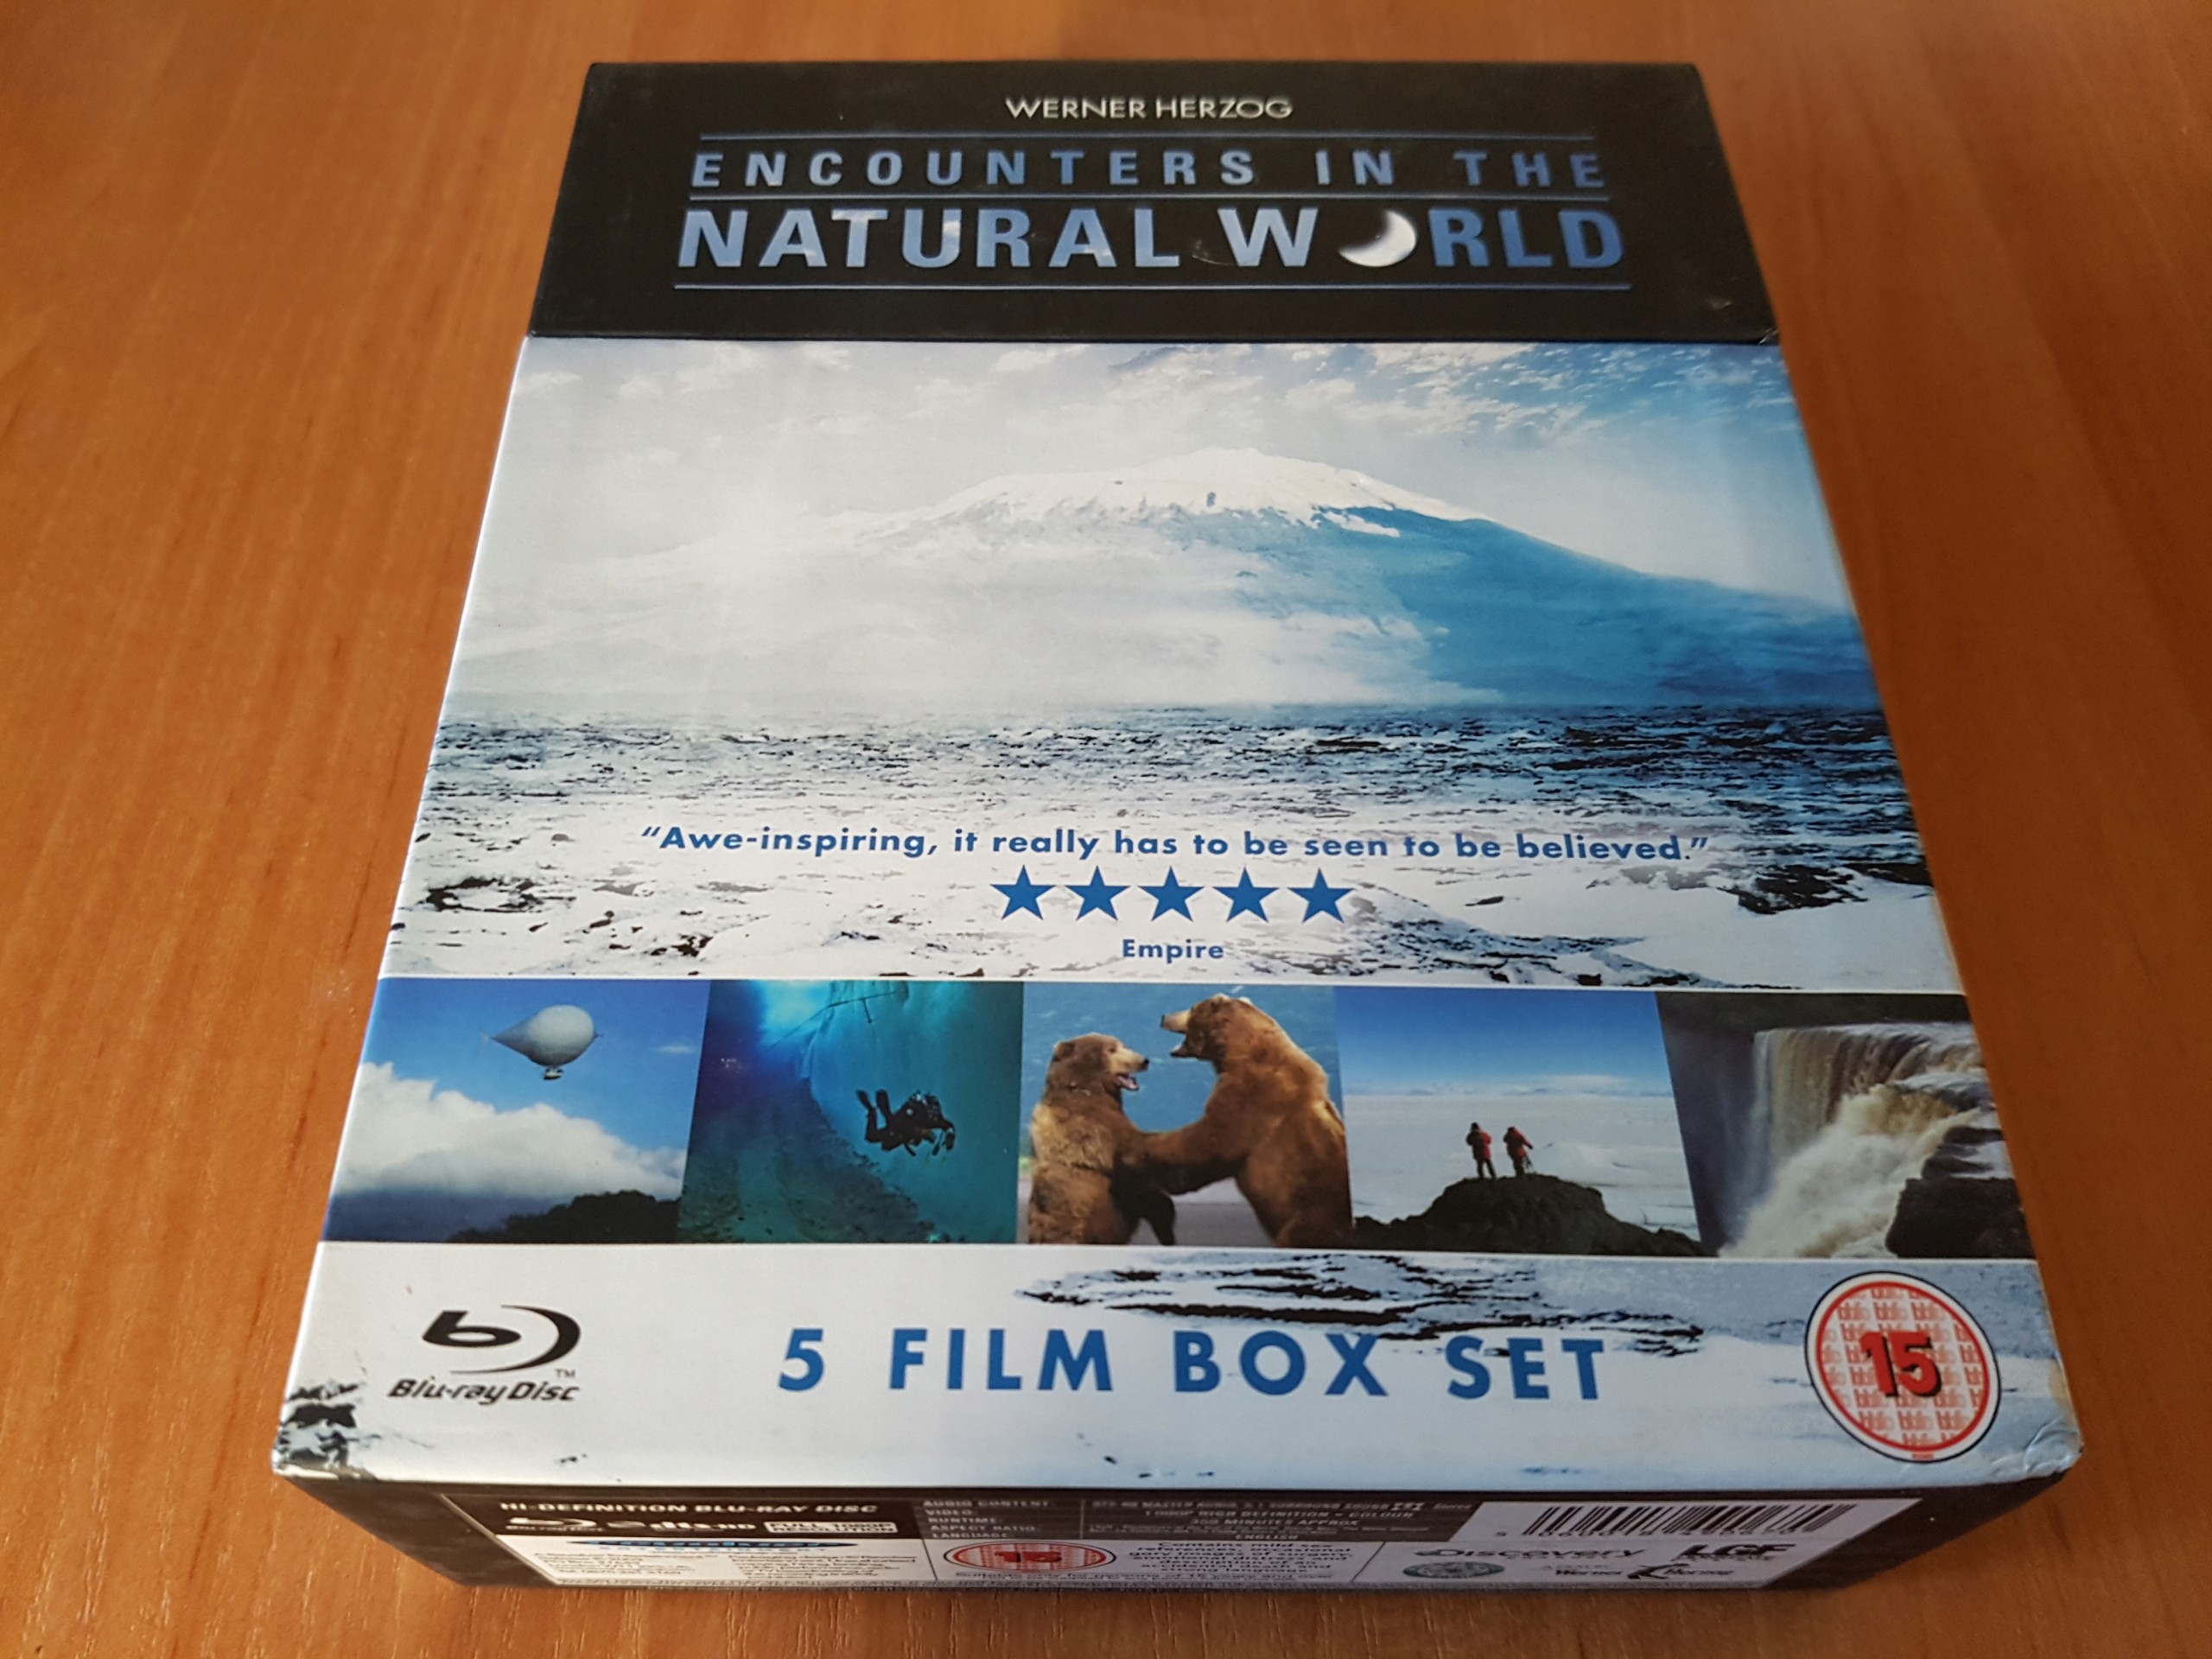 ENCOUNTERS IN THE NATURAL WORLD - 5 FILM BOX SET